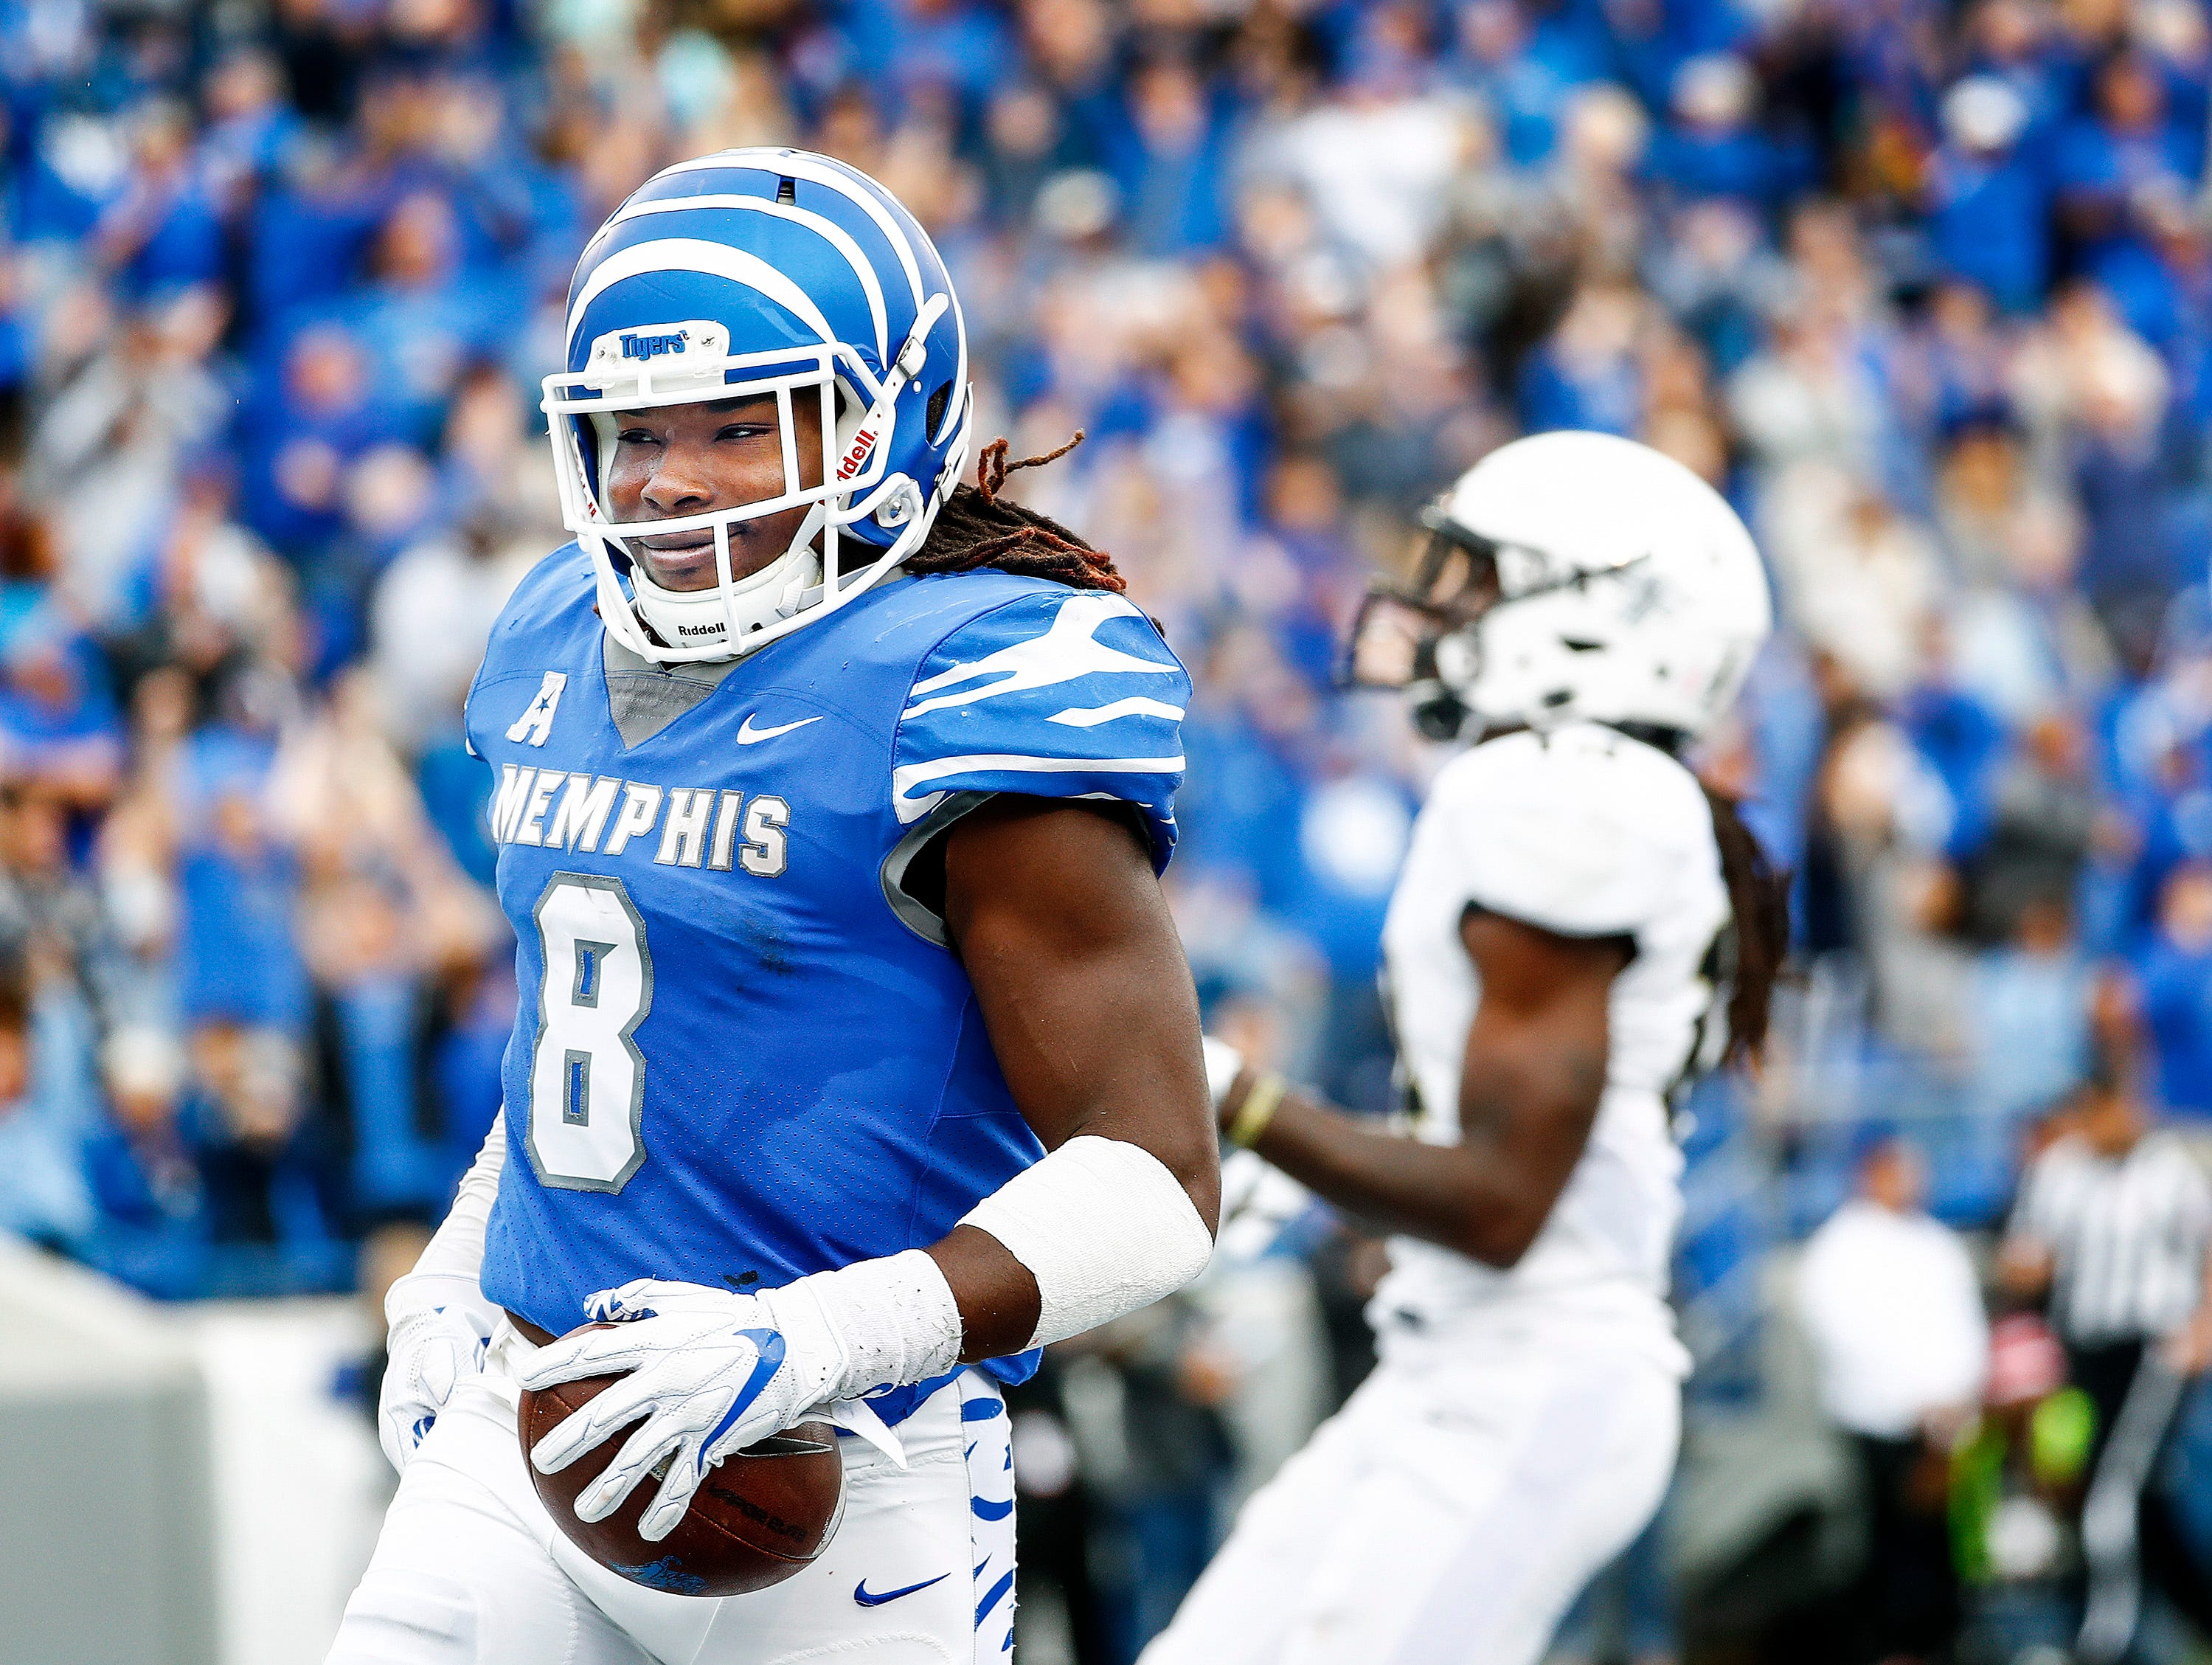 Memphis running back Darrell Henderson (left) celebrates a touchdown against the Central Florida defense during acton in Memphis, Tenn., Saturday, October 13, 2018.